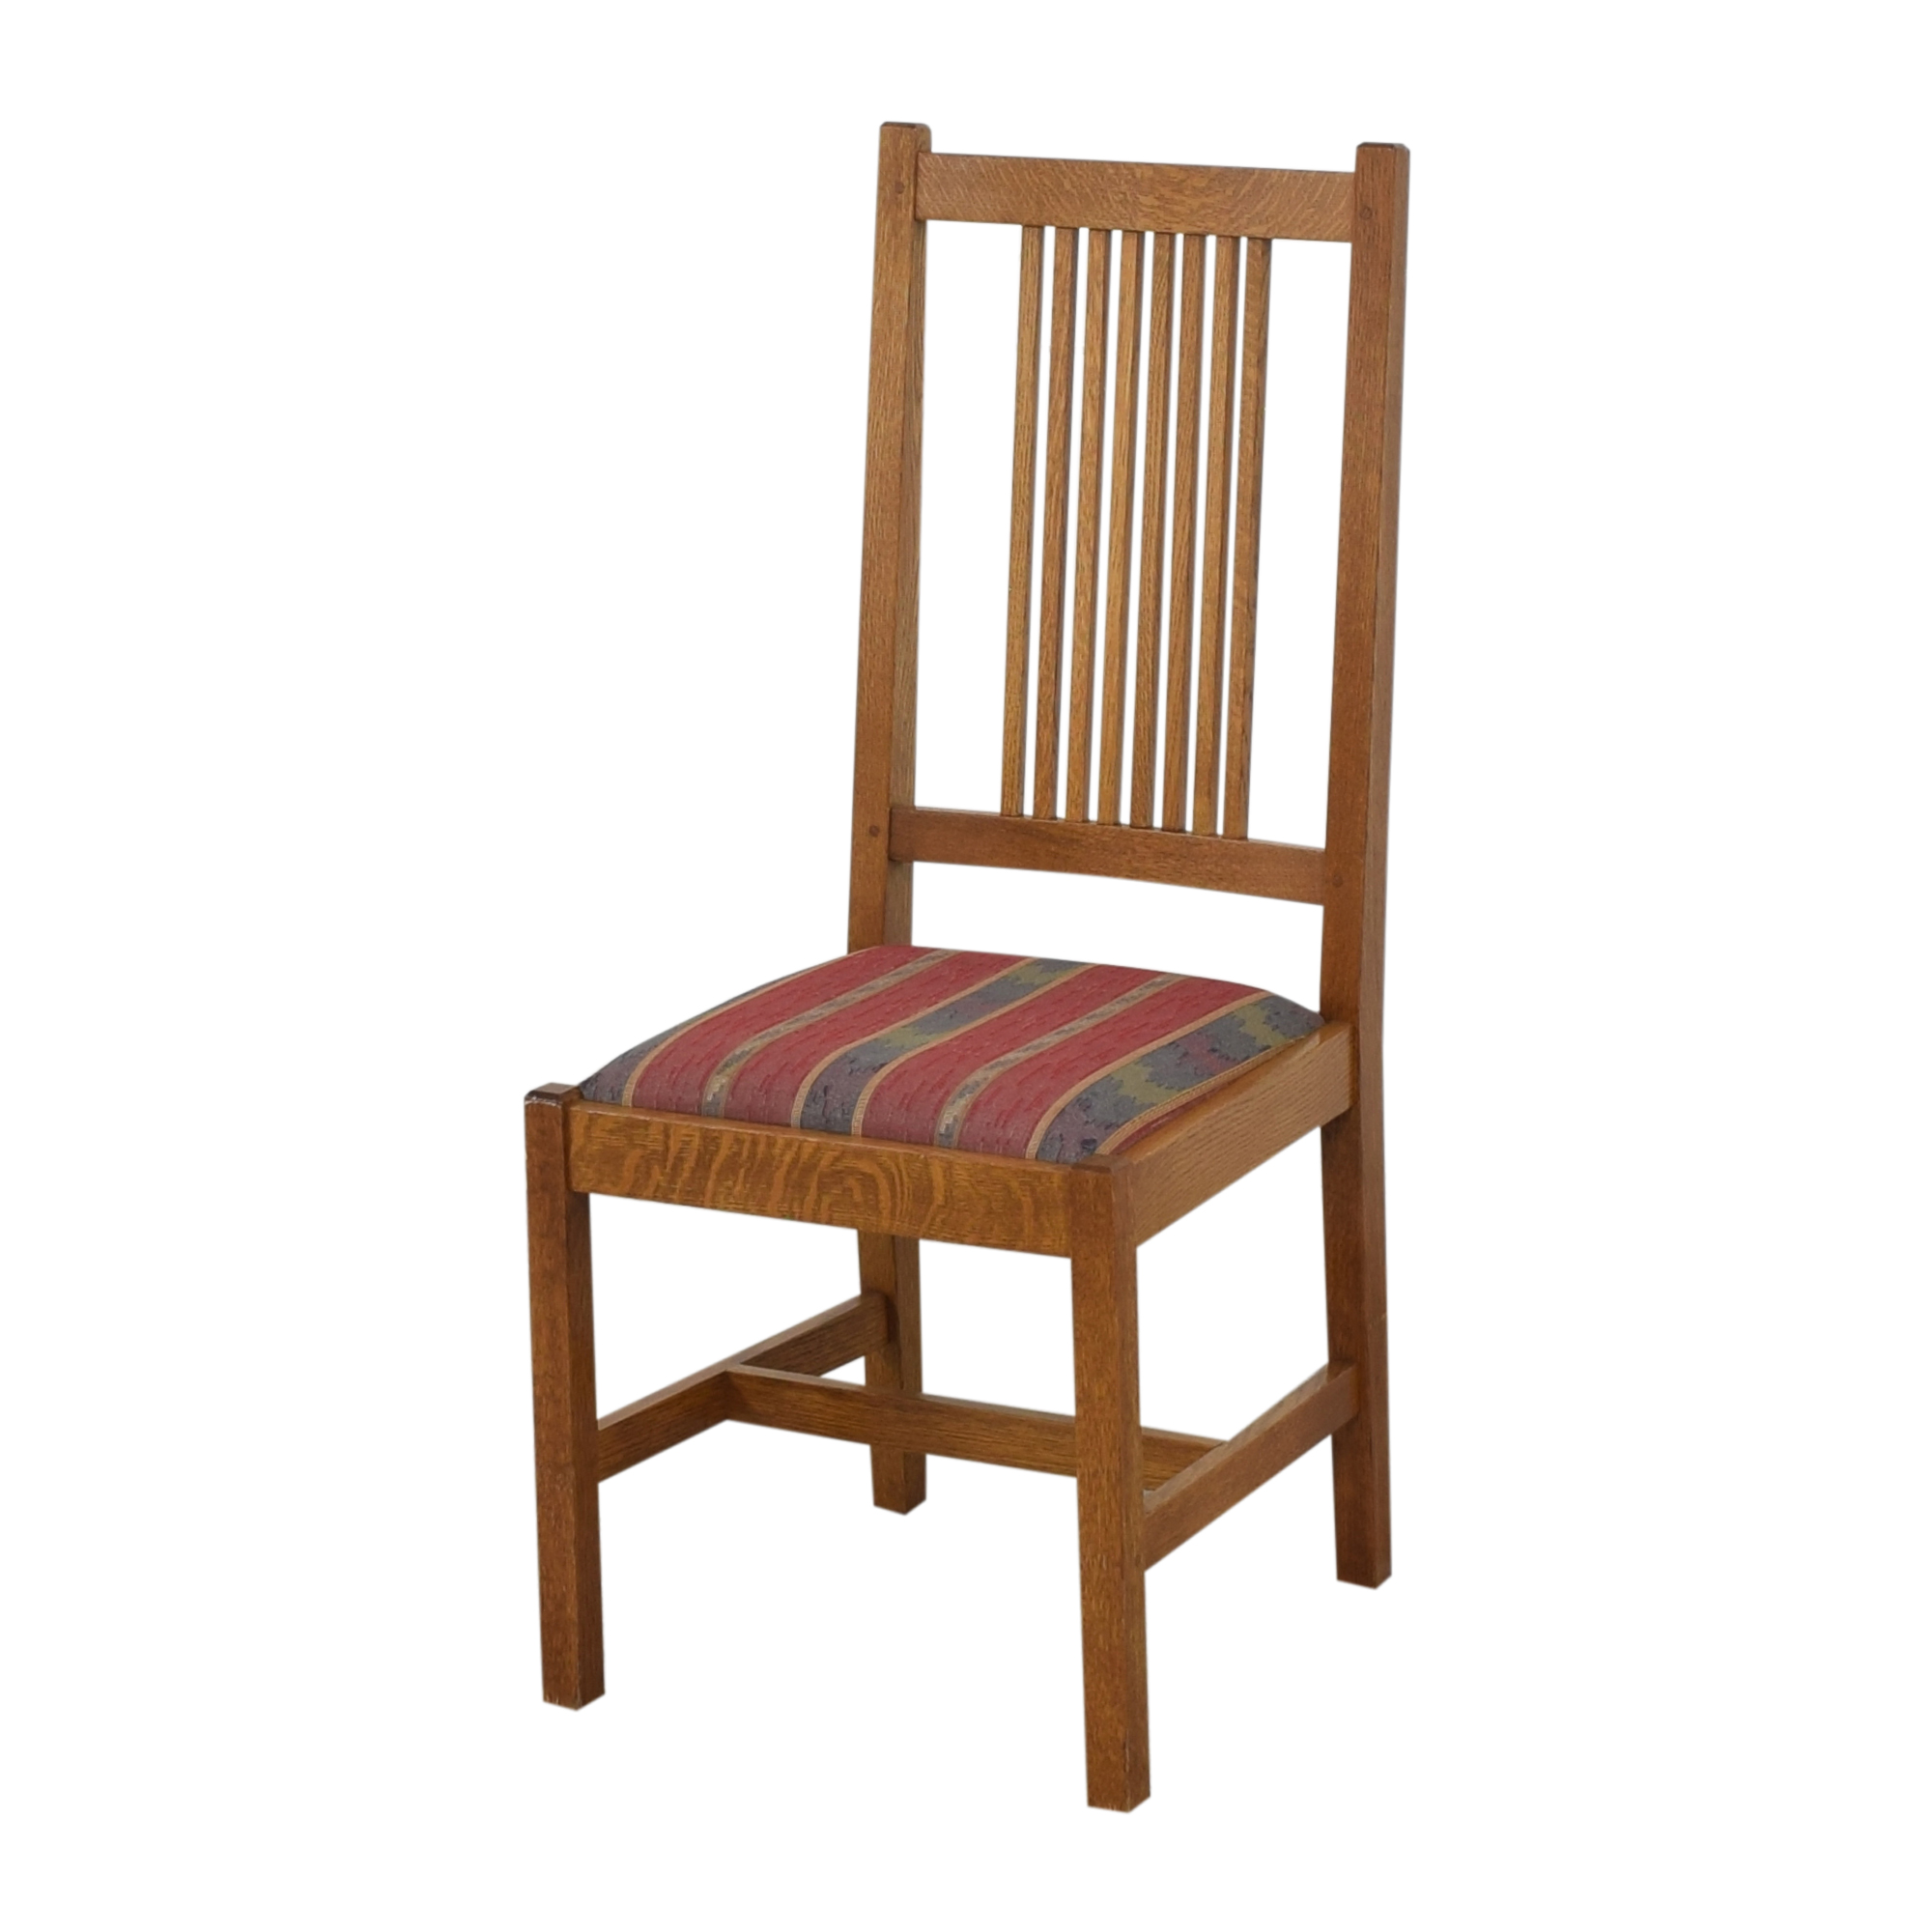 Stickley Furniture Stickley Furniture Mission Side Chairs on sale